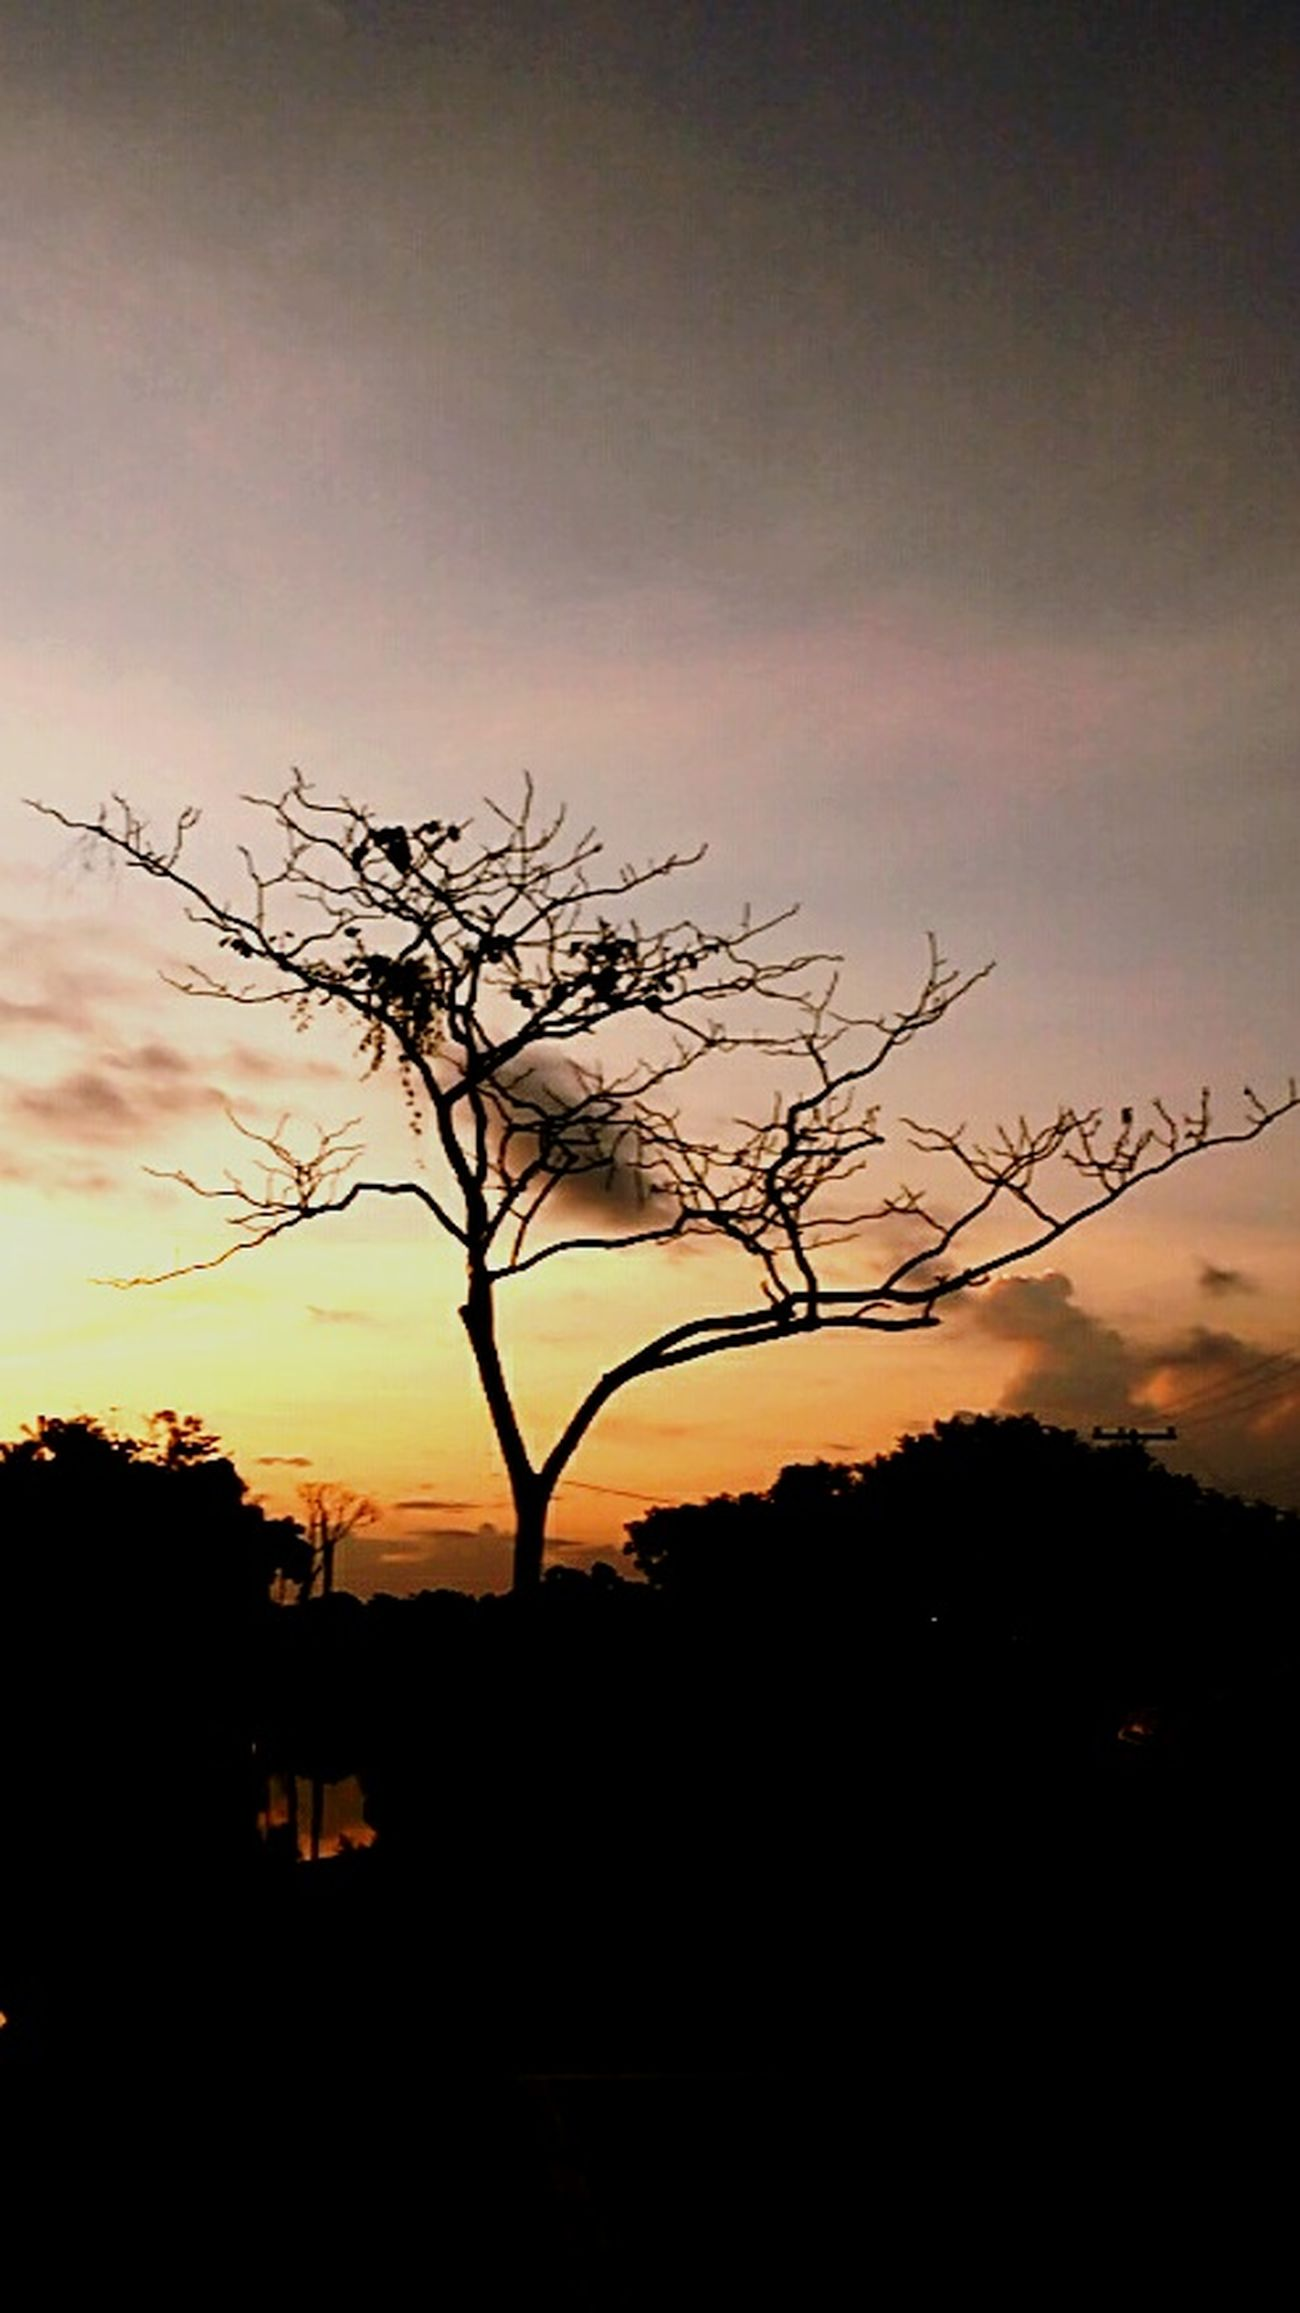 Acre Amazonia Natureza Arvore Céu Por Do Sol UFAC First Eyeem Photo